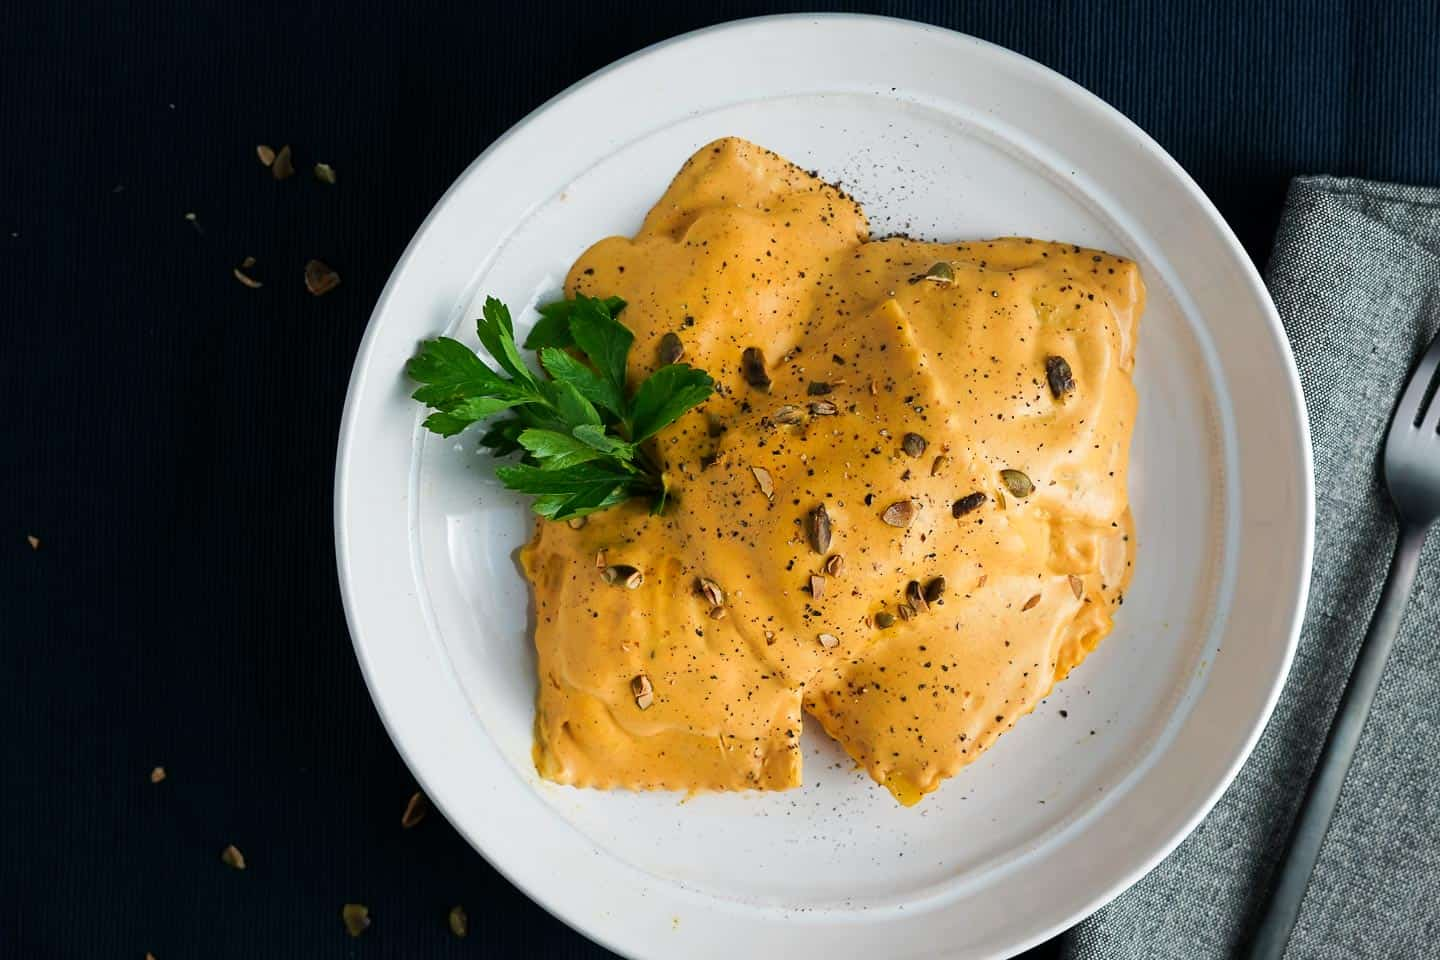 Ravioli with Pumpkin Cream Sauce on white plate with napkin and fork on the side